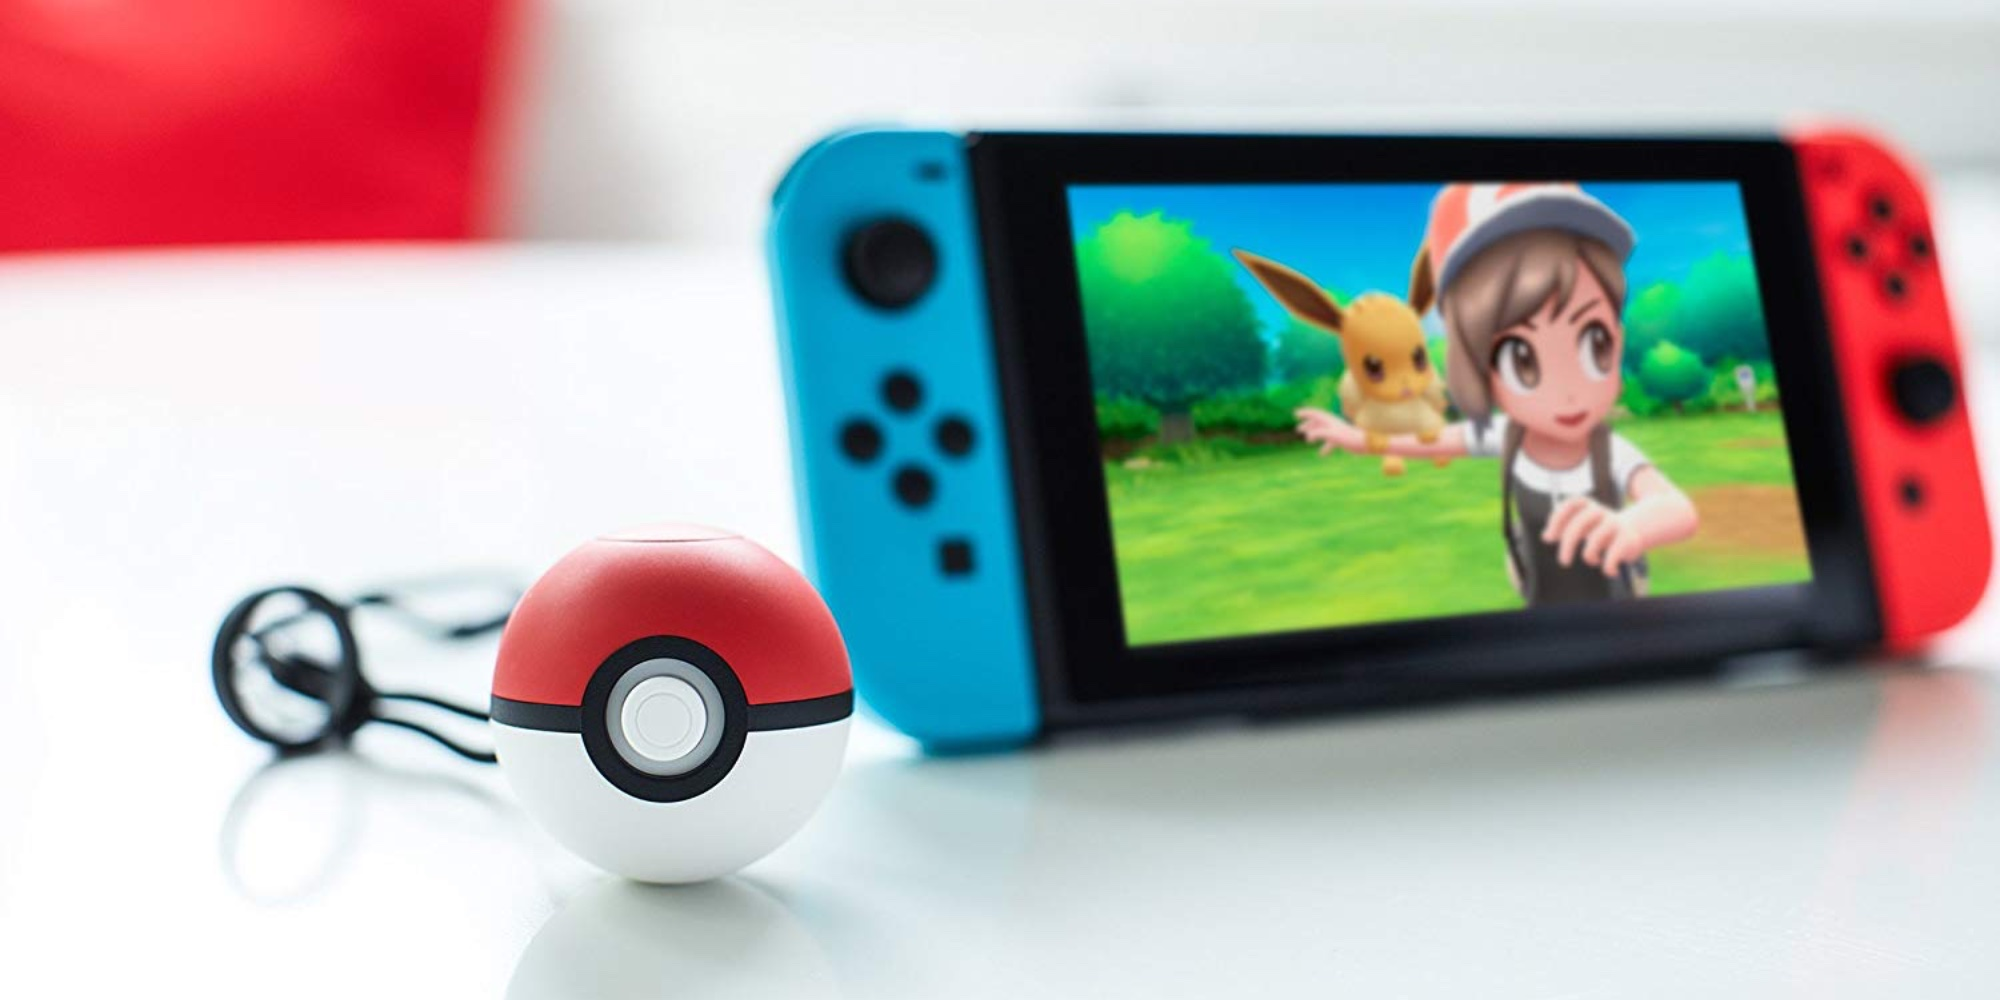 Nintendo's Poké Ball Plus Switch Controller has never sold for less, now down to $42 shipped